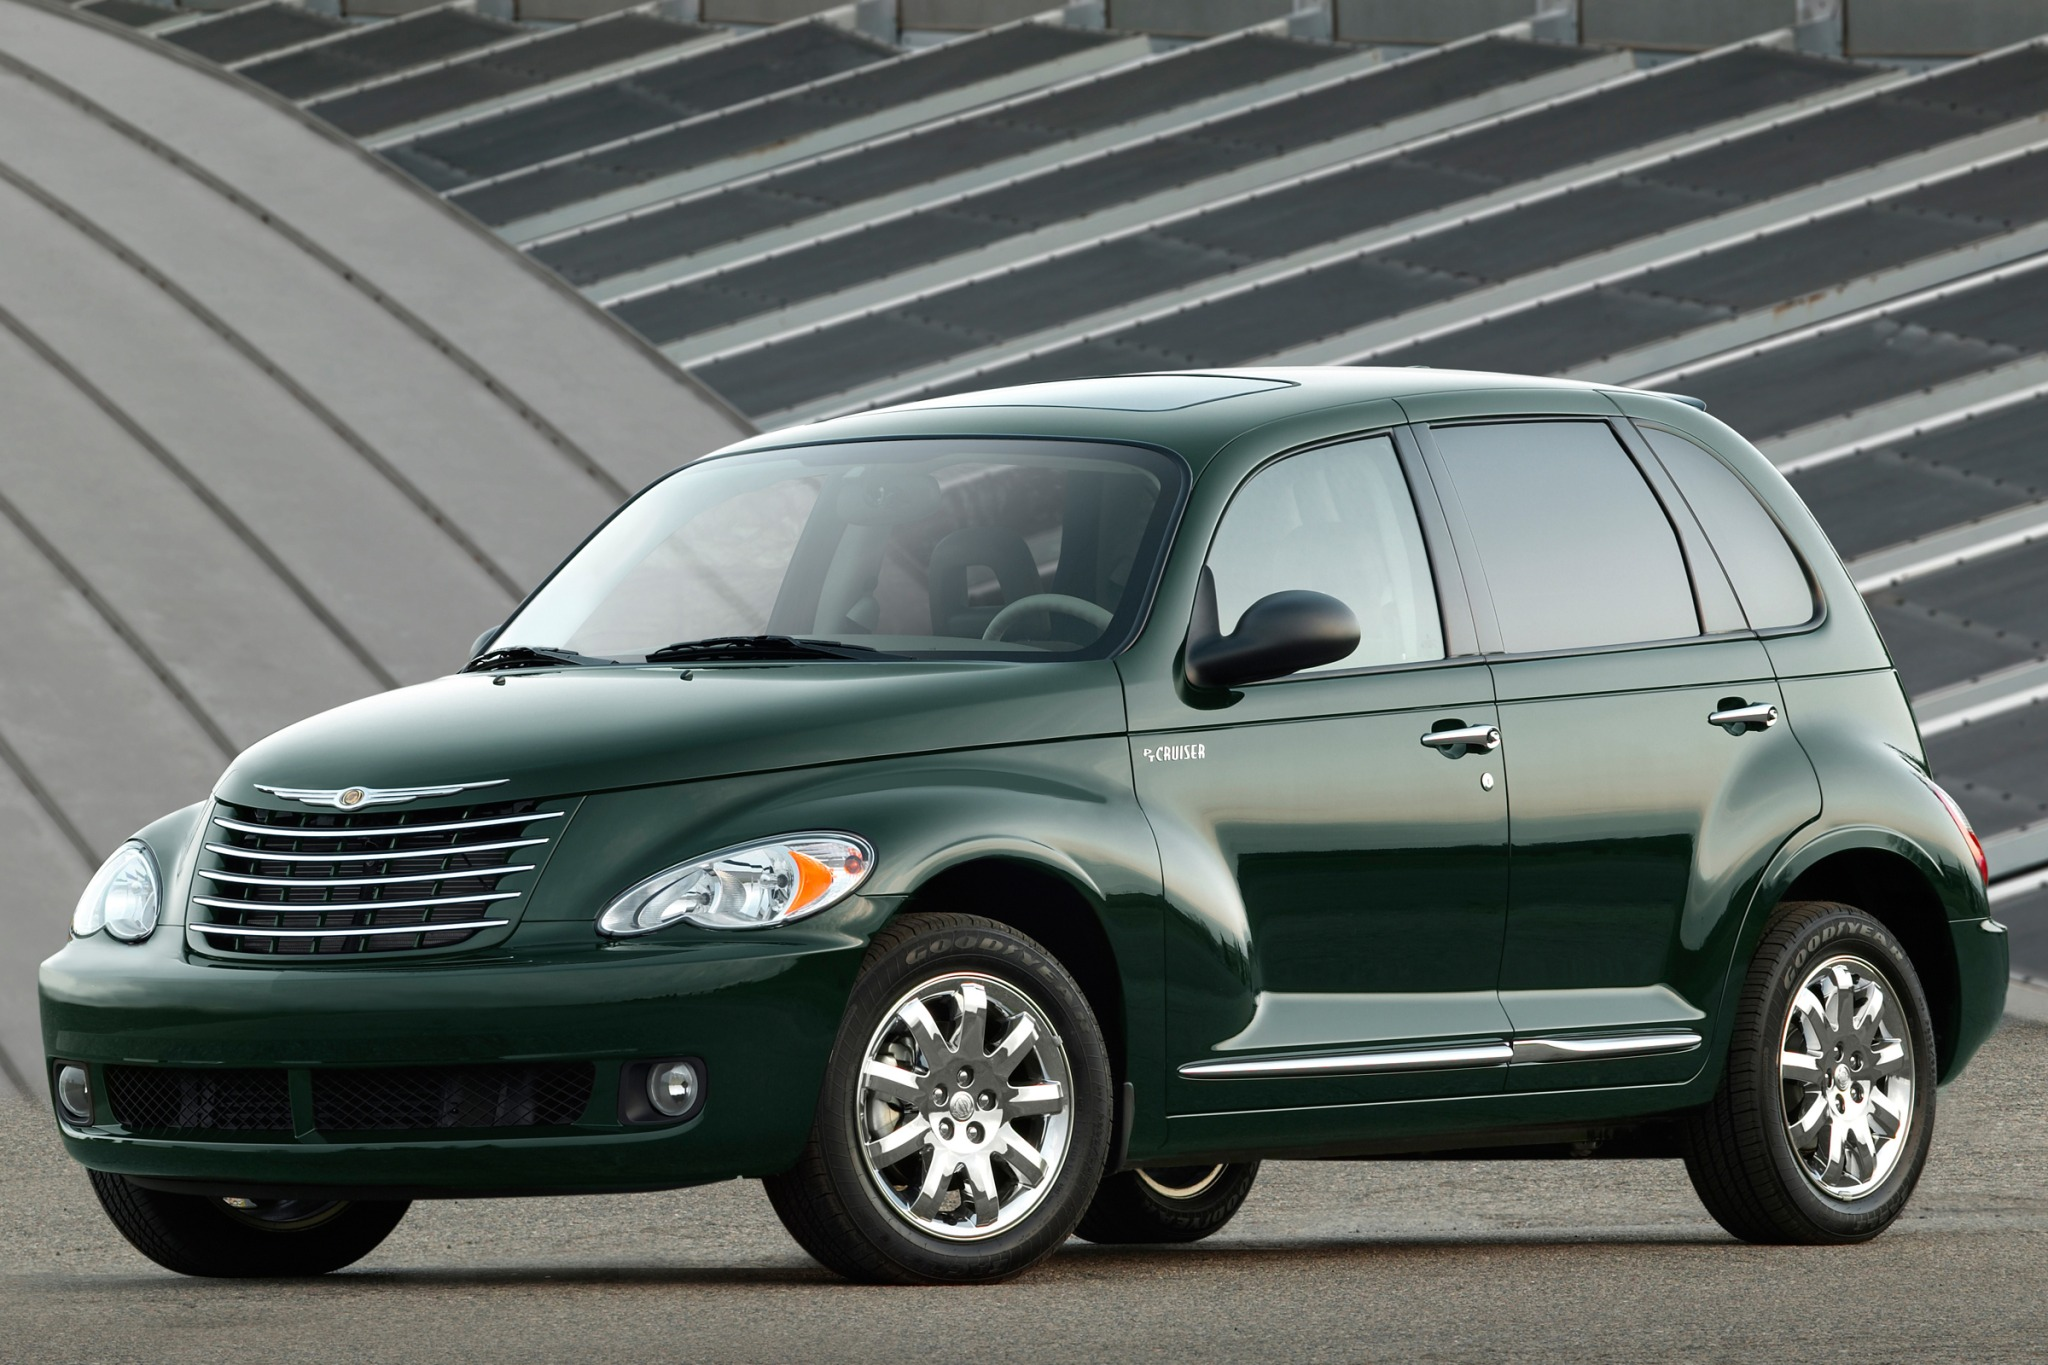 2007 Chrysler PT Cruiser  exterior #6